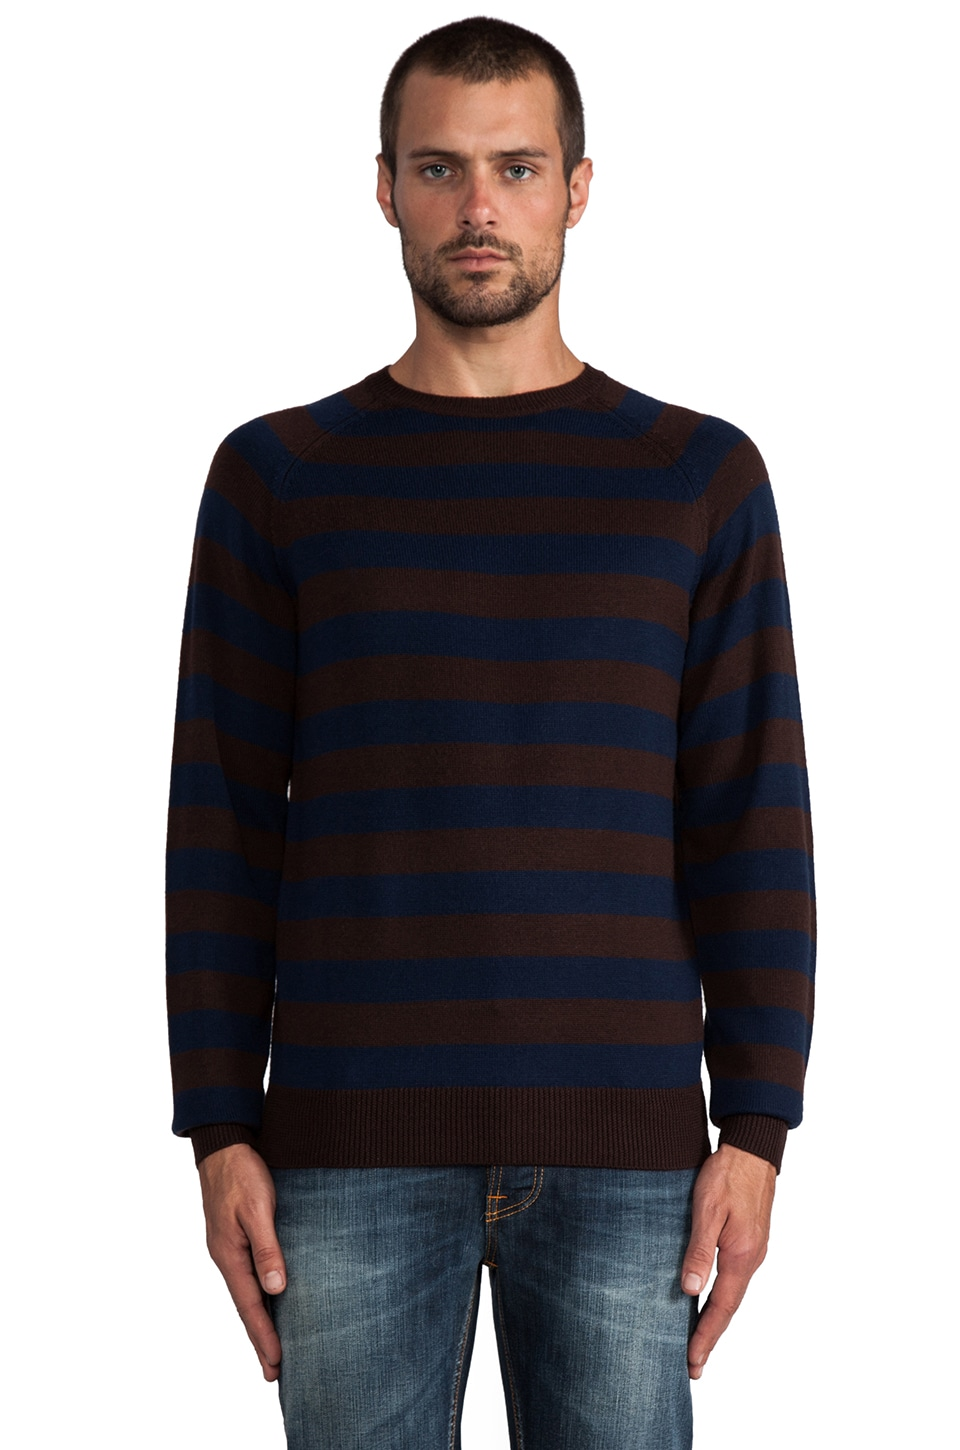 Marc by Marc Jacobs Yukon Stripe Sweater in Darkest Brown Multi